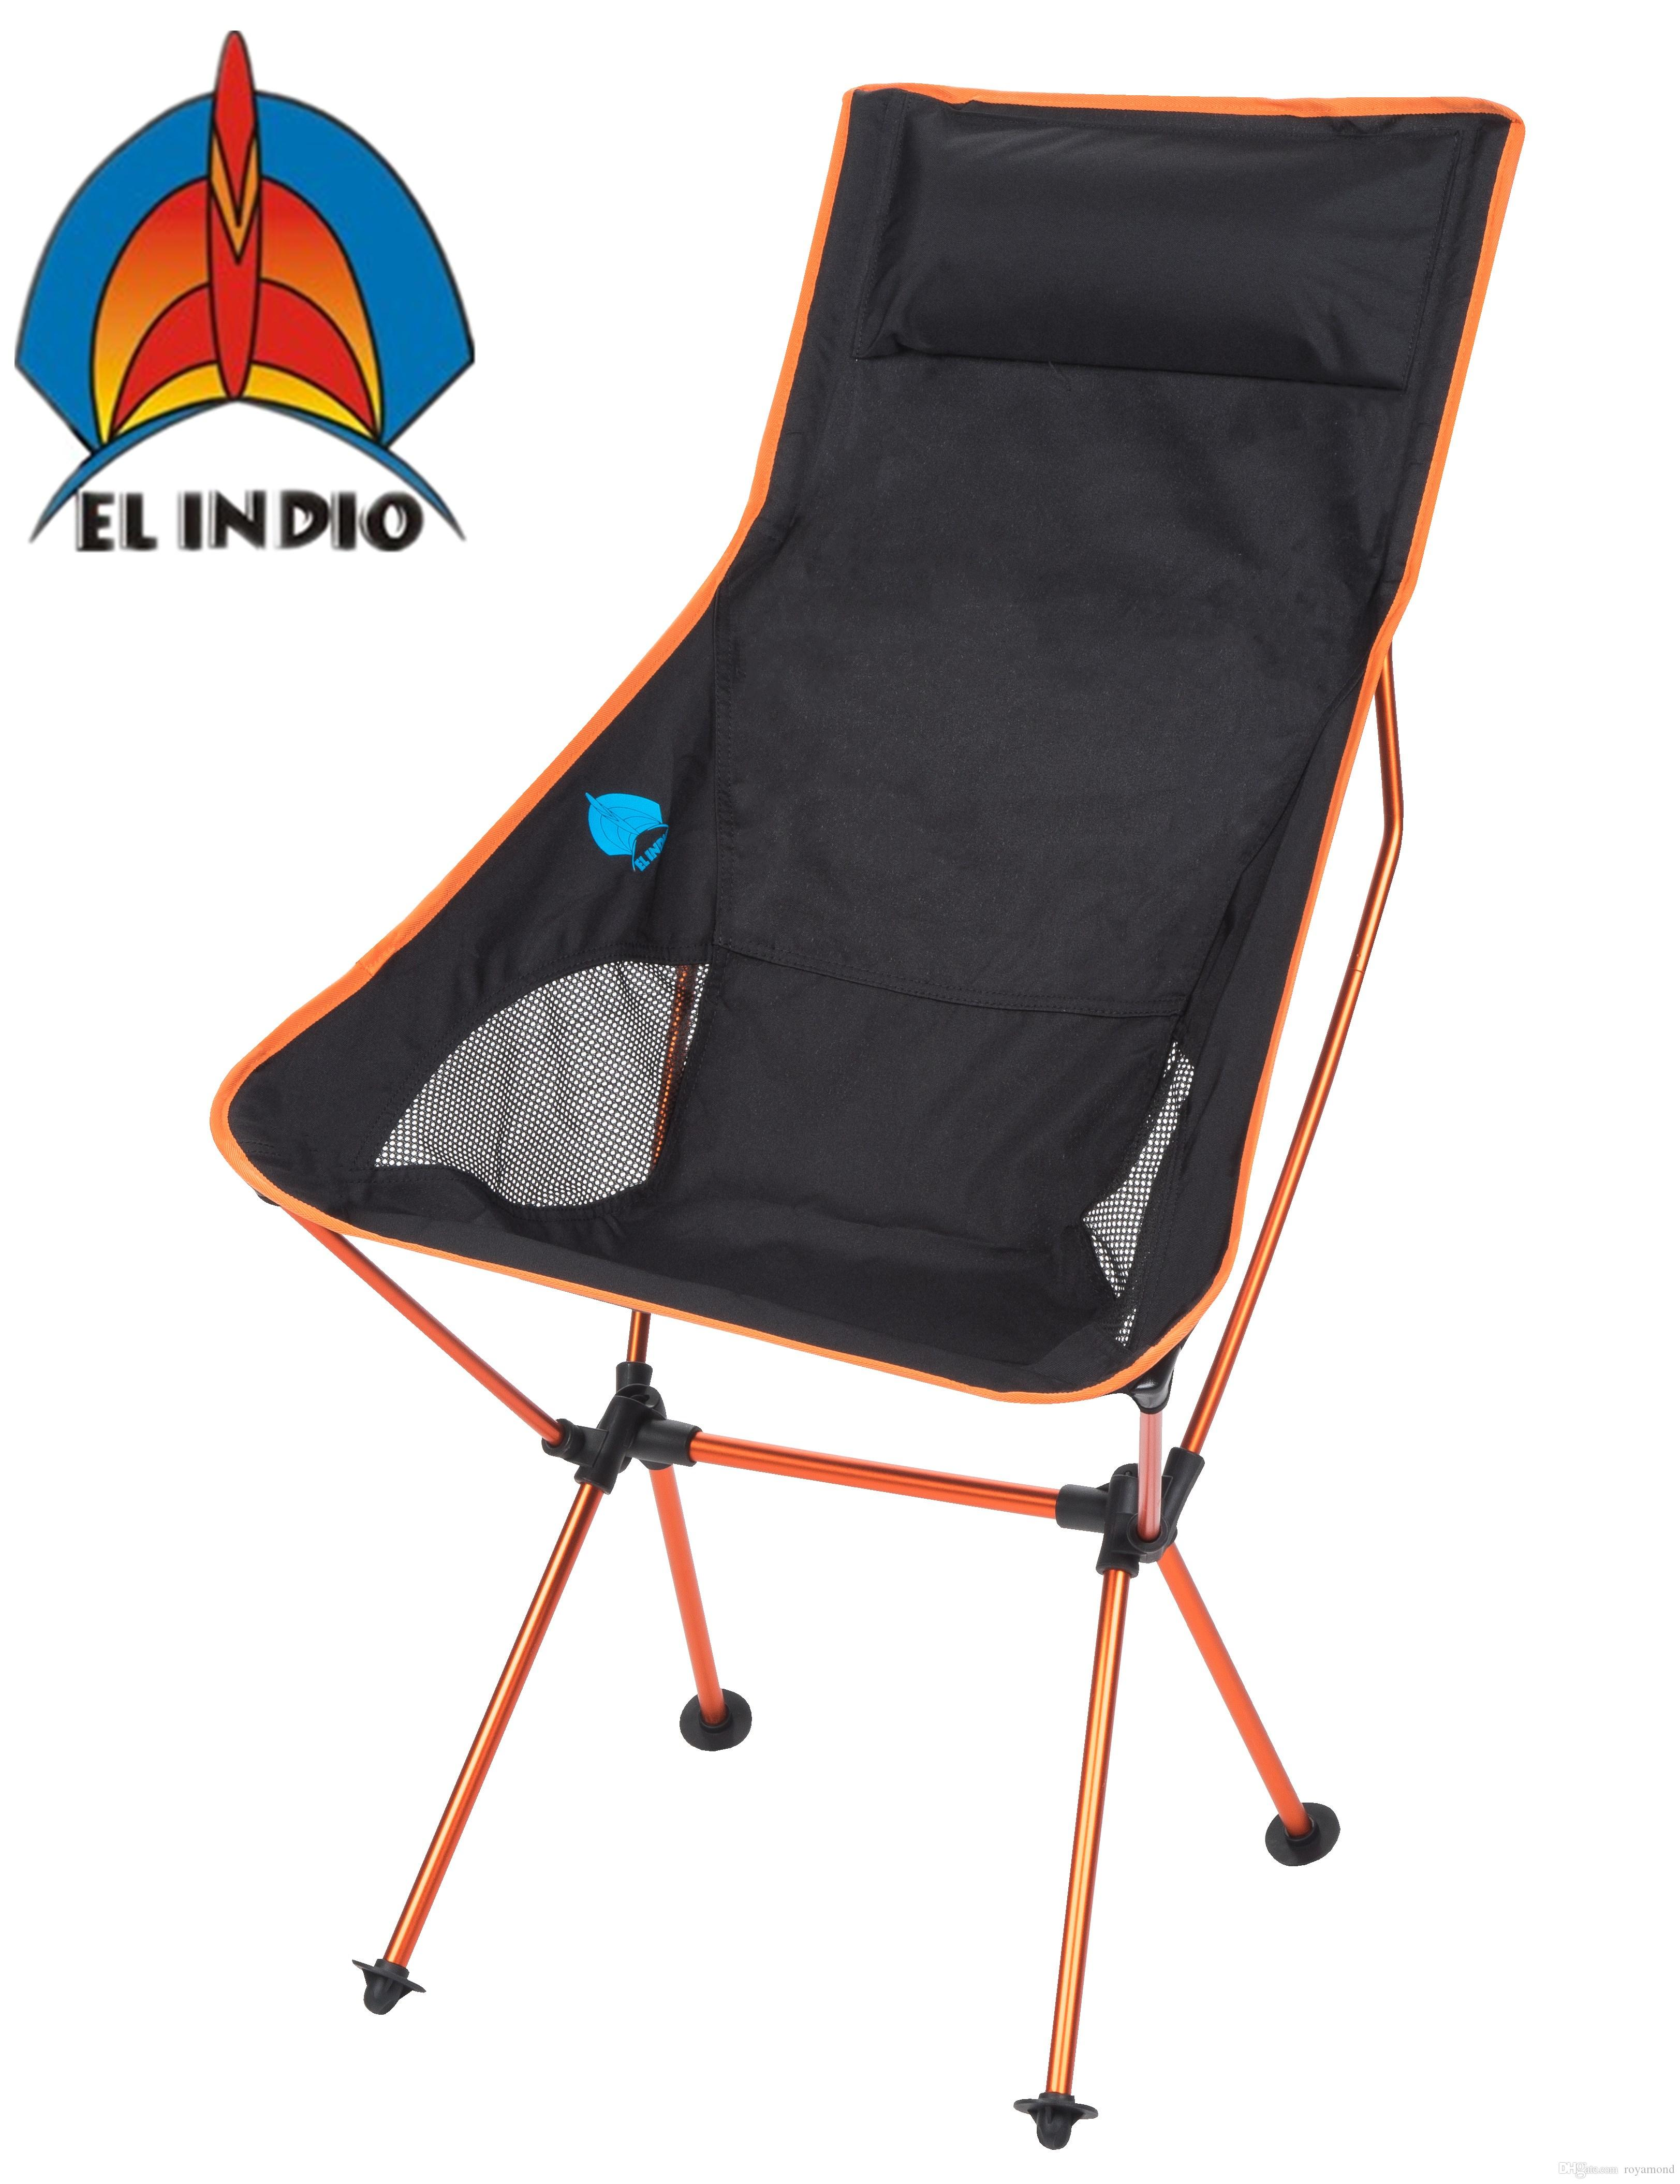 El Indio Fishing Chair Folding Camping Chairs Ultra Lightweight Folding Portable Outdoor Hiking Lounger Bbq Picnic Chair Garden Table Patio Chairs